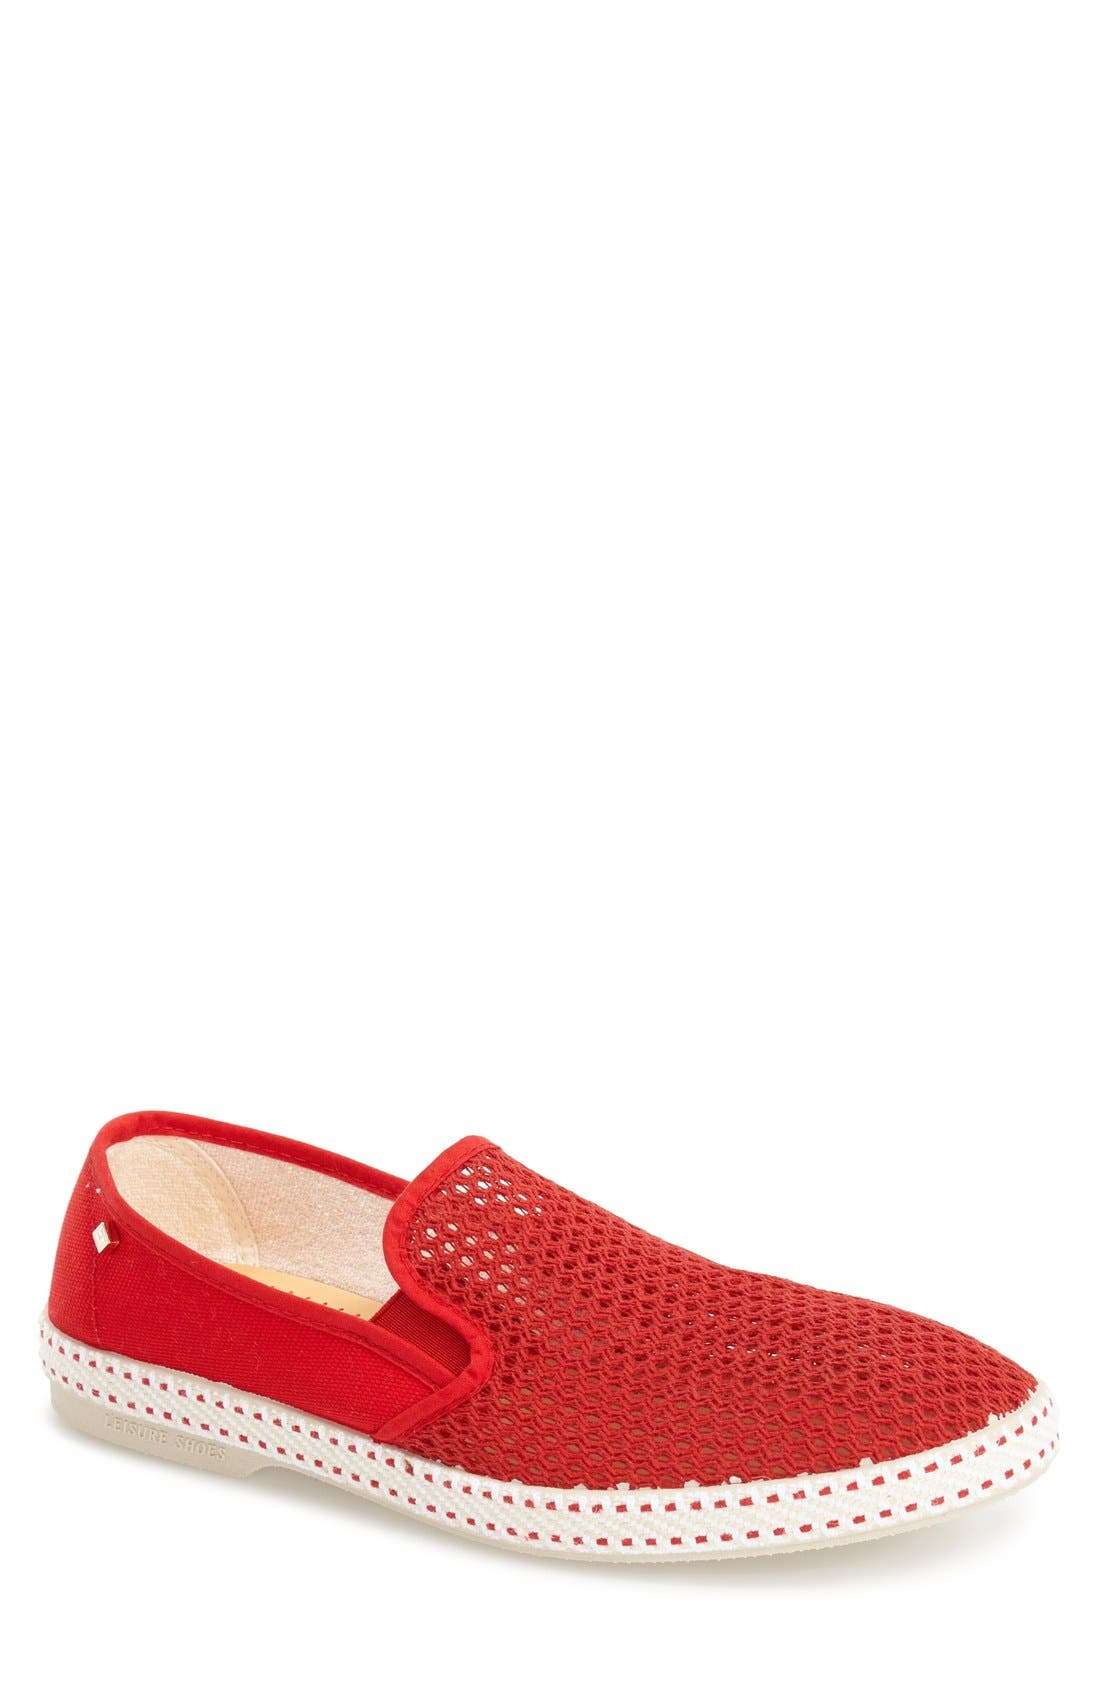 Alternate Image 1 Selected - Rivieras 'Classic' Slip-On